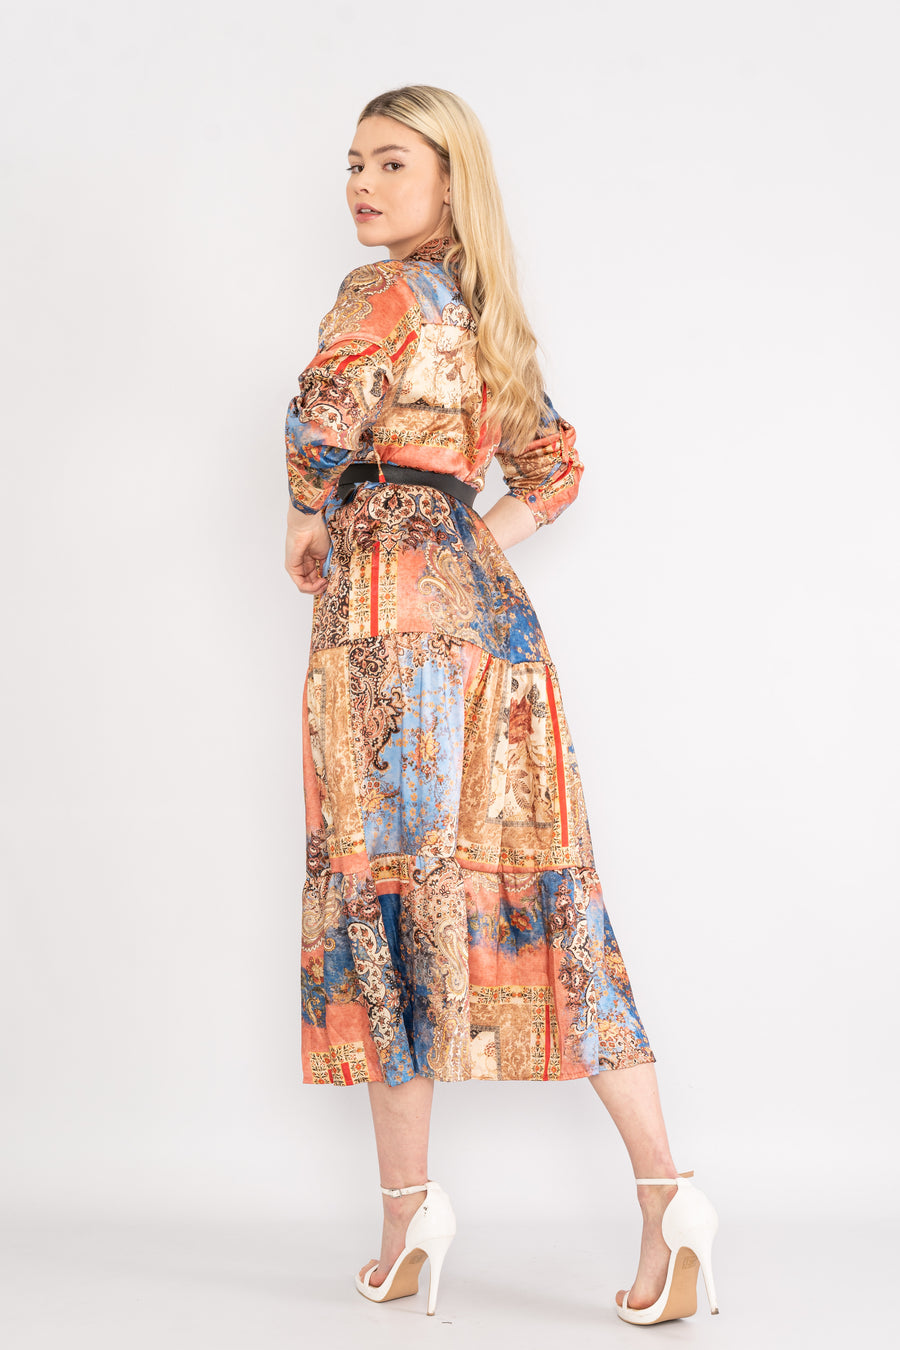 Midi patterned dress with belt.